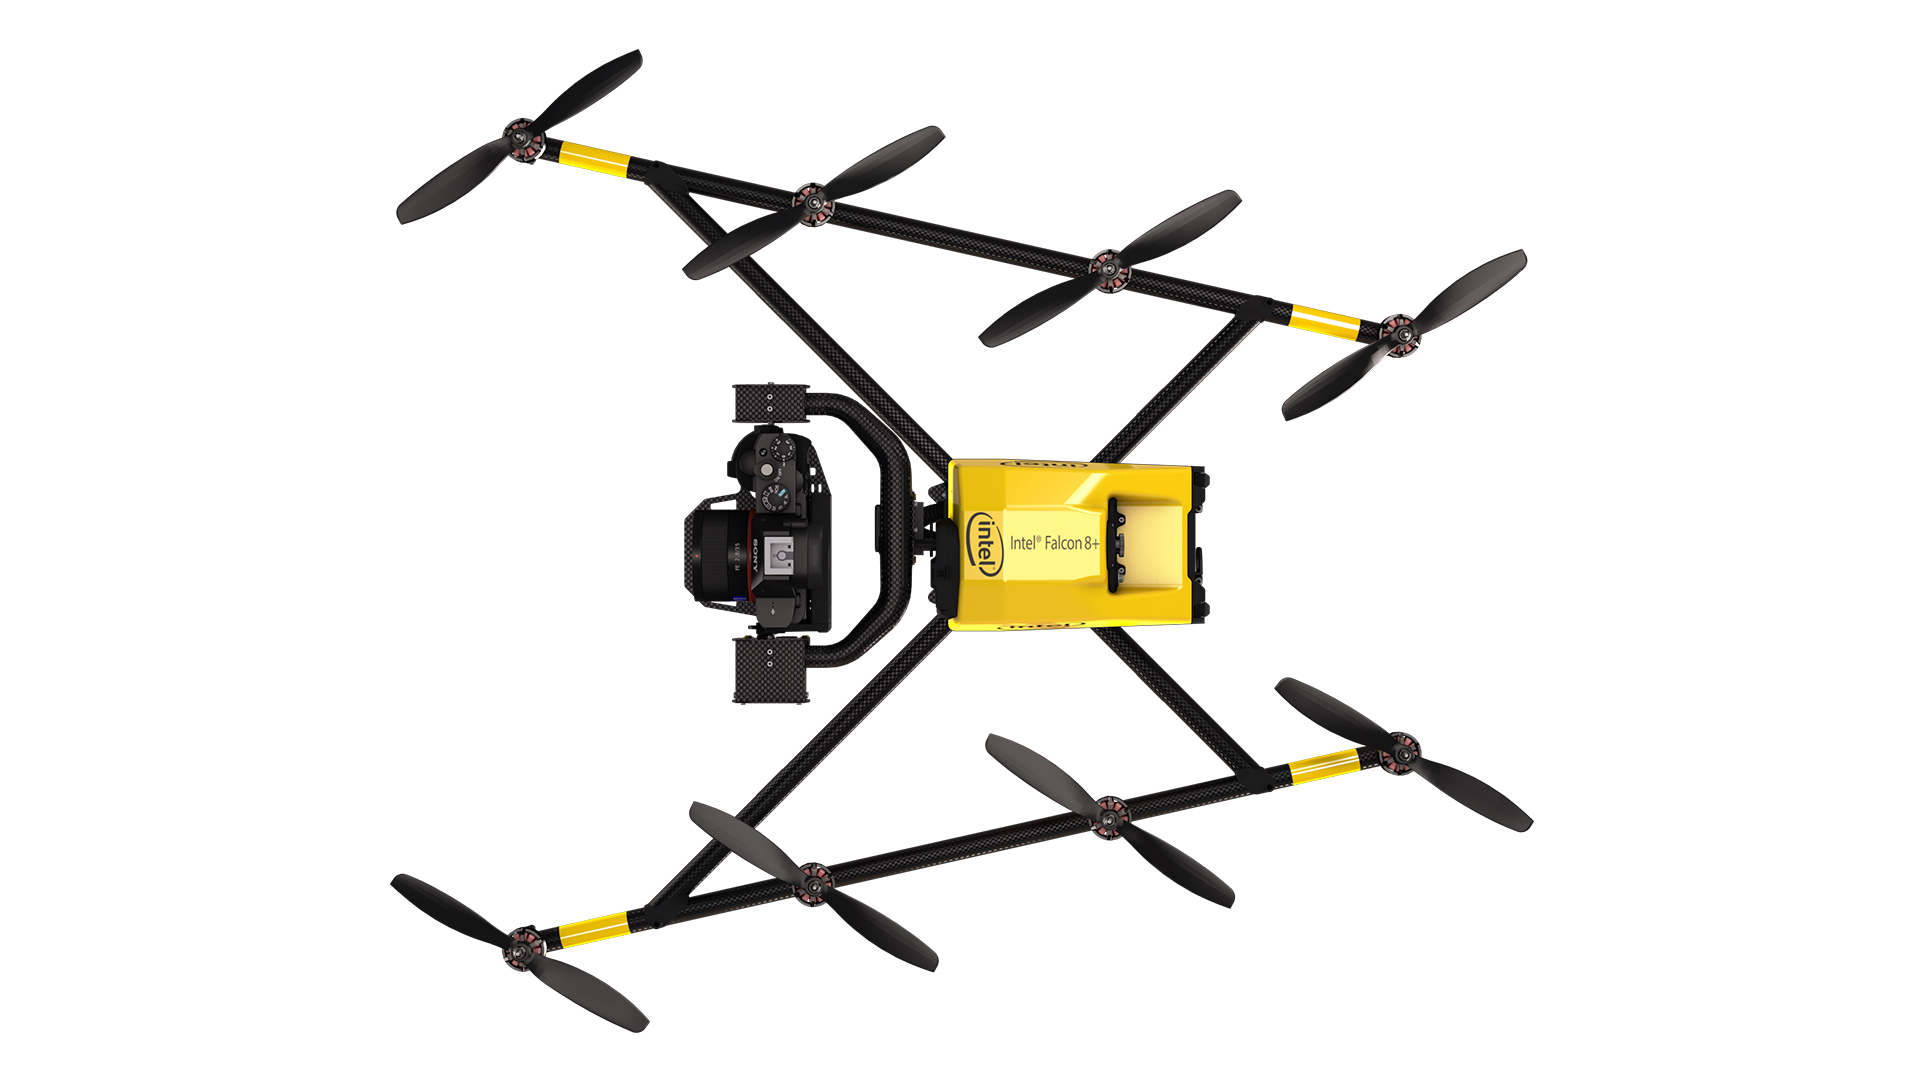 The Intel Falcon 8+ drone is an advanced, unmanned aerial vehicle (UAV) designed for professional use. It delivers the best performance and weight-to-payload ratio on the market, the highest stability in harsh conditions, and best-in-class safety. (Credit: Intel Corporation)